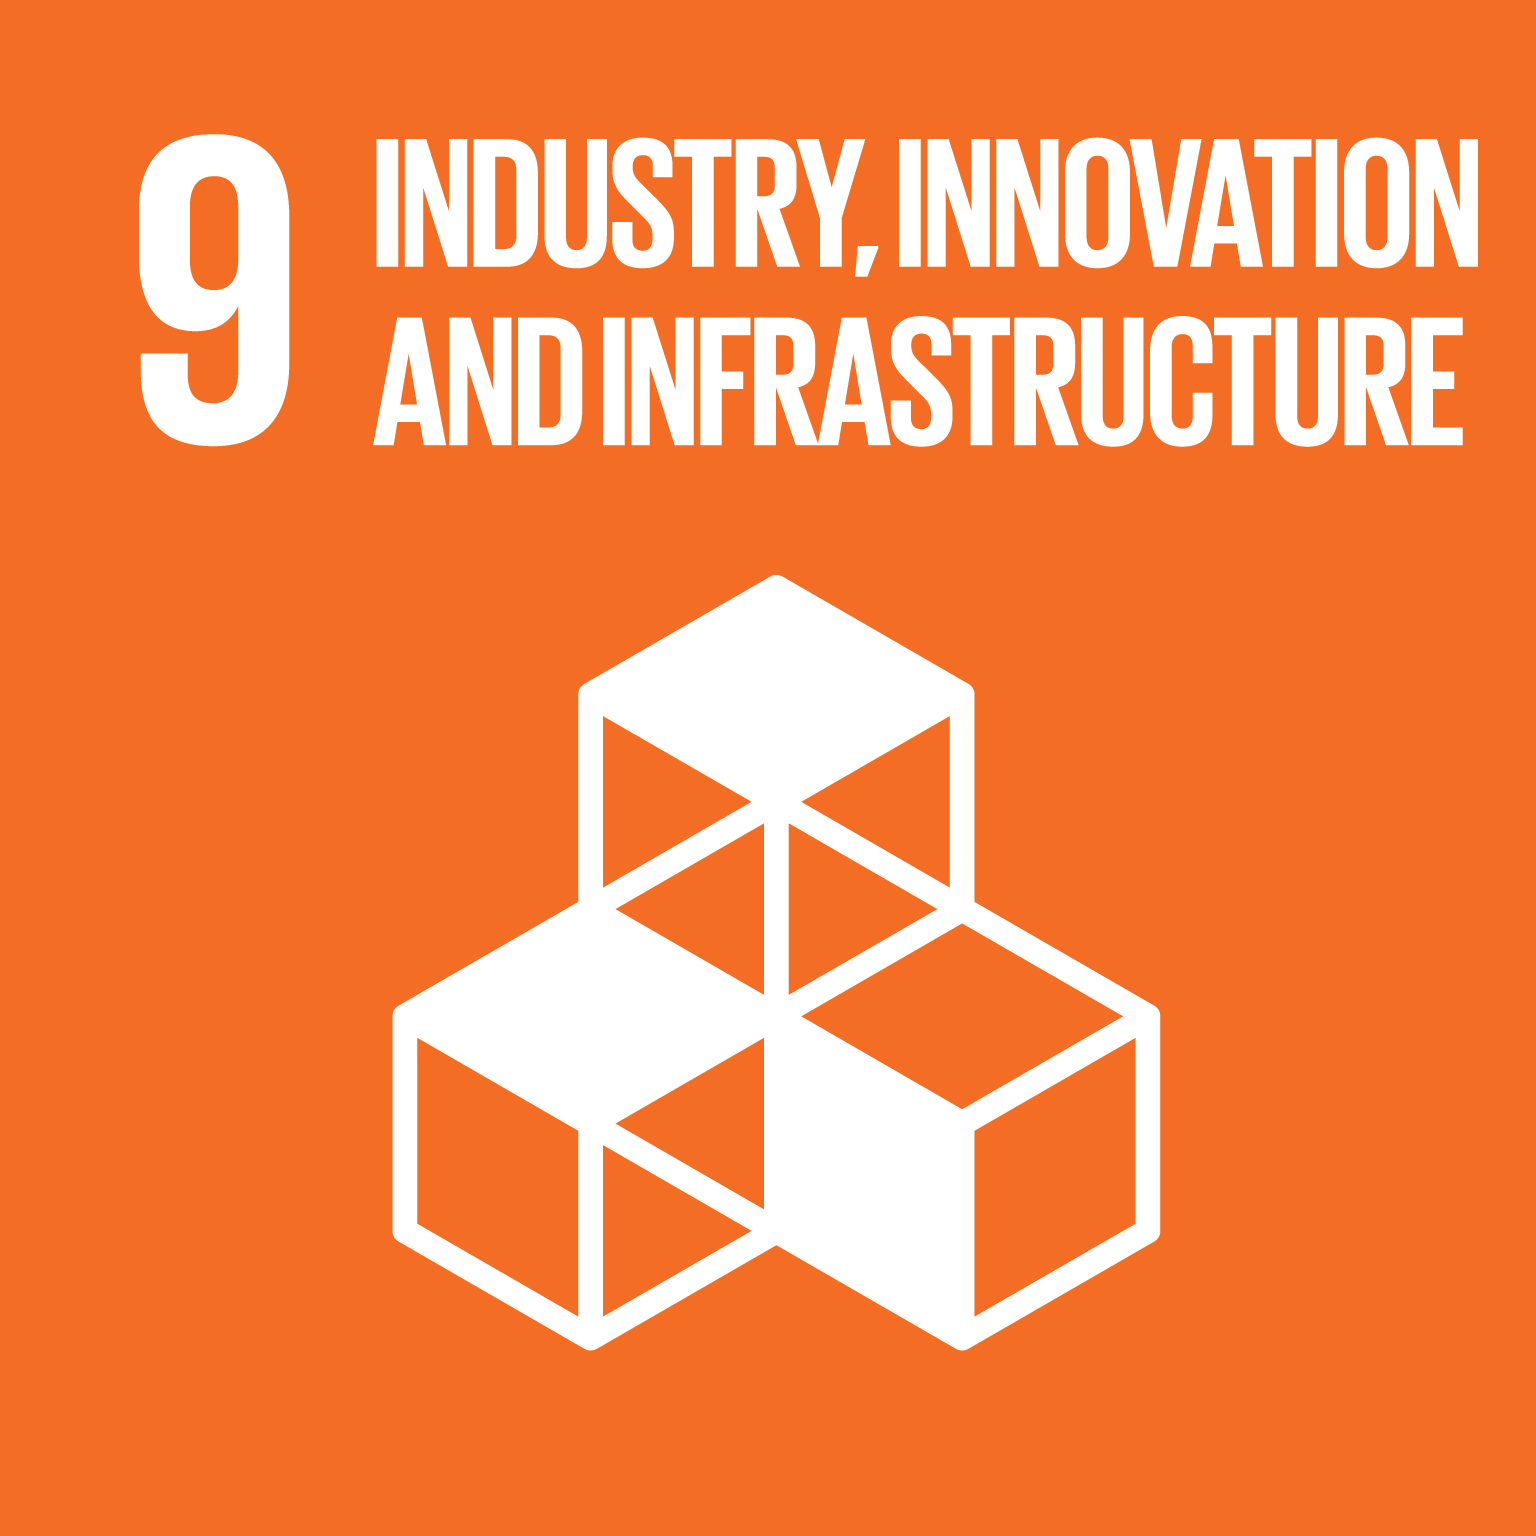 9_IndustryInnovationAndInfrastructure